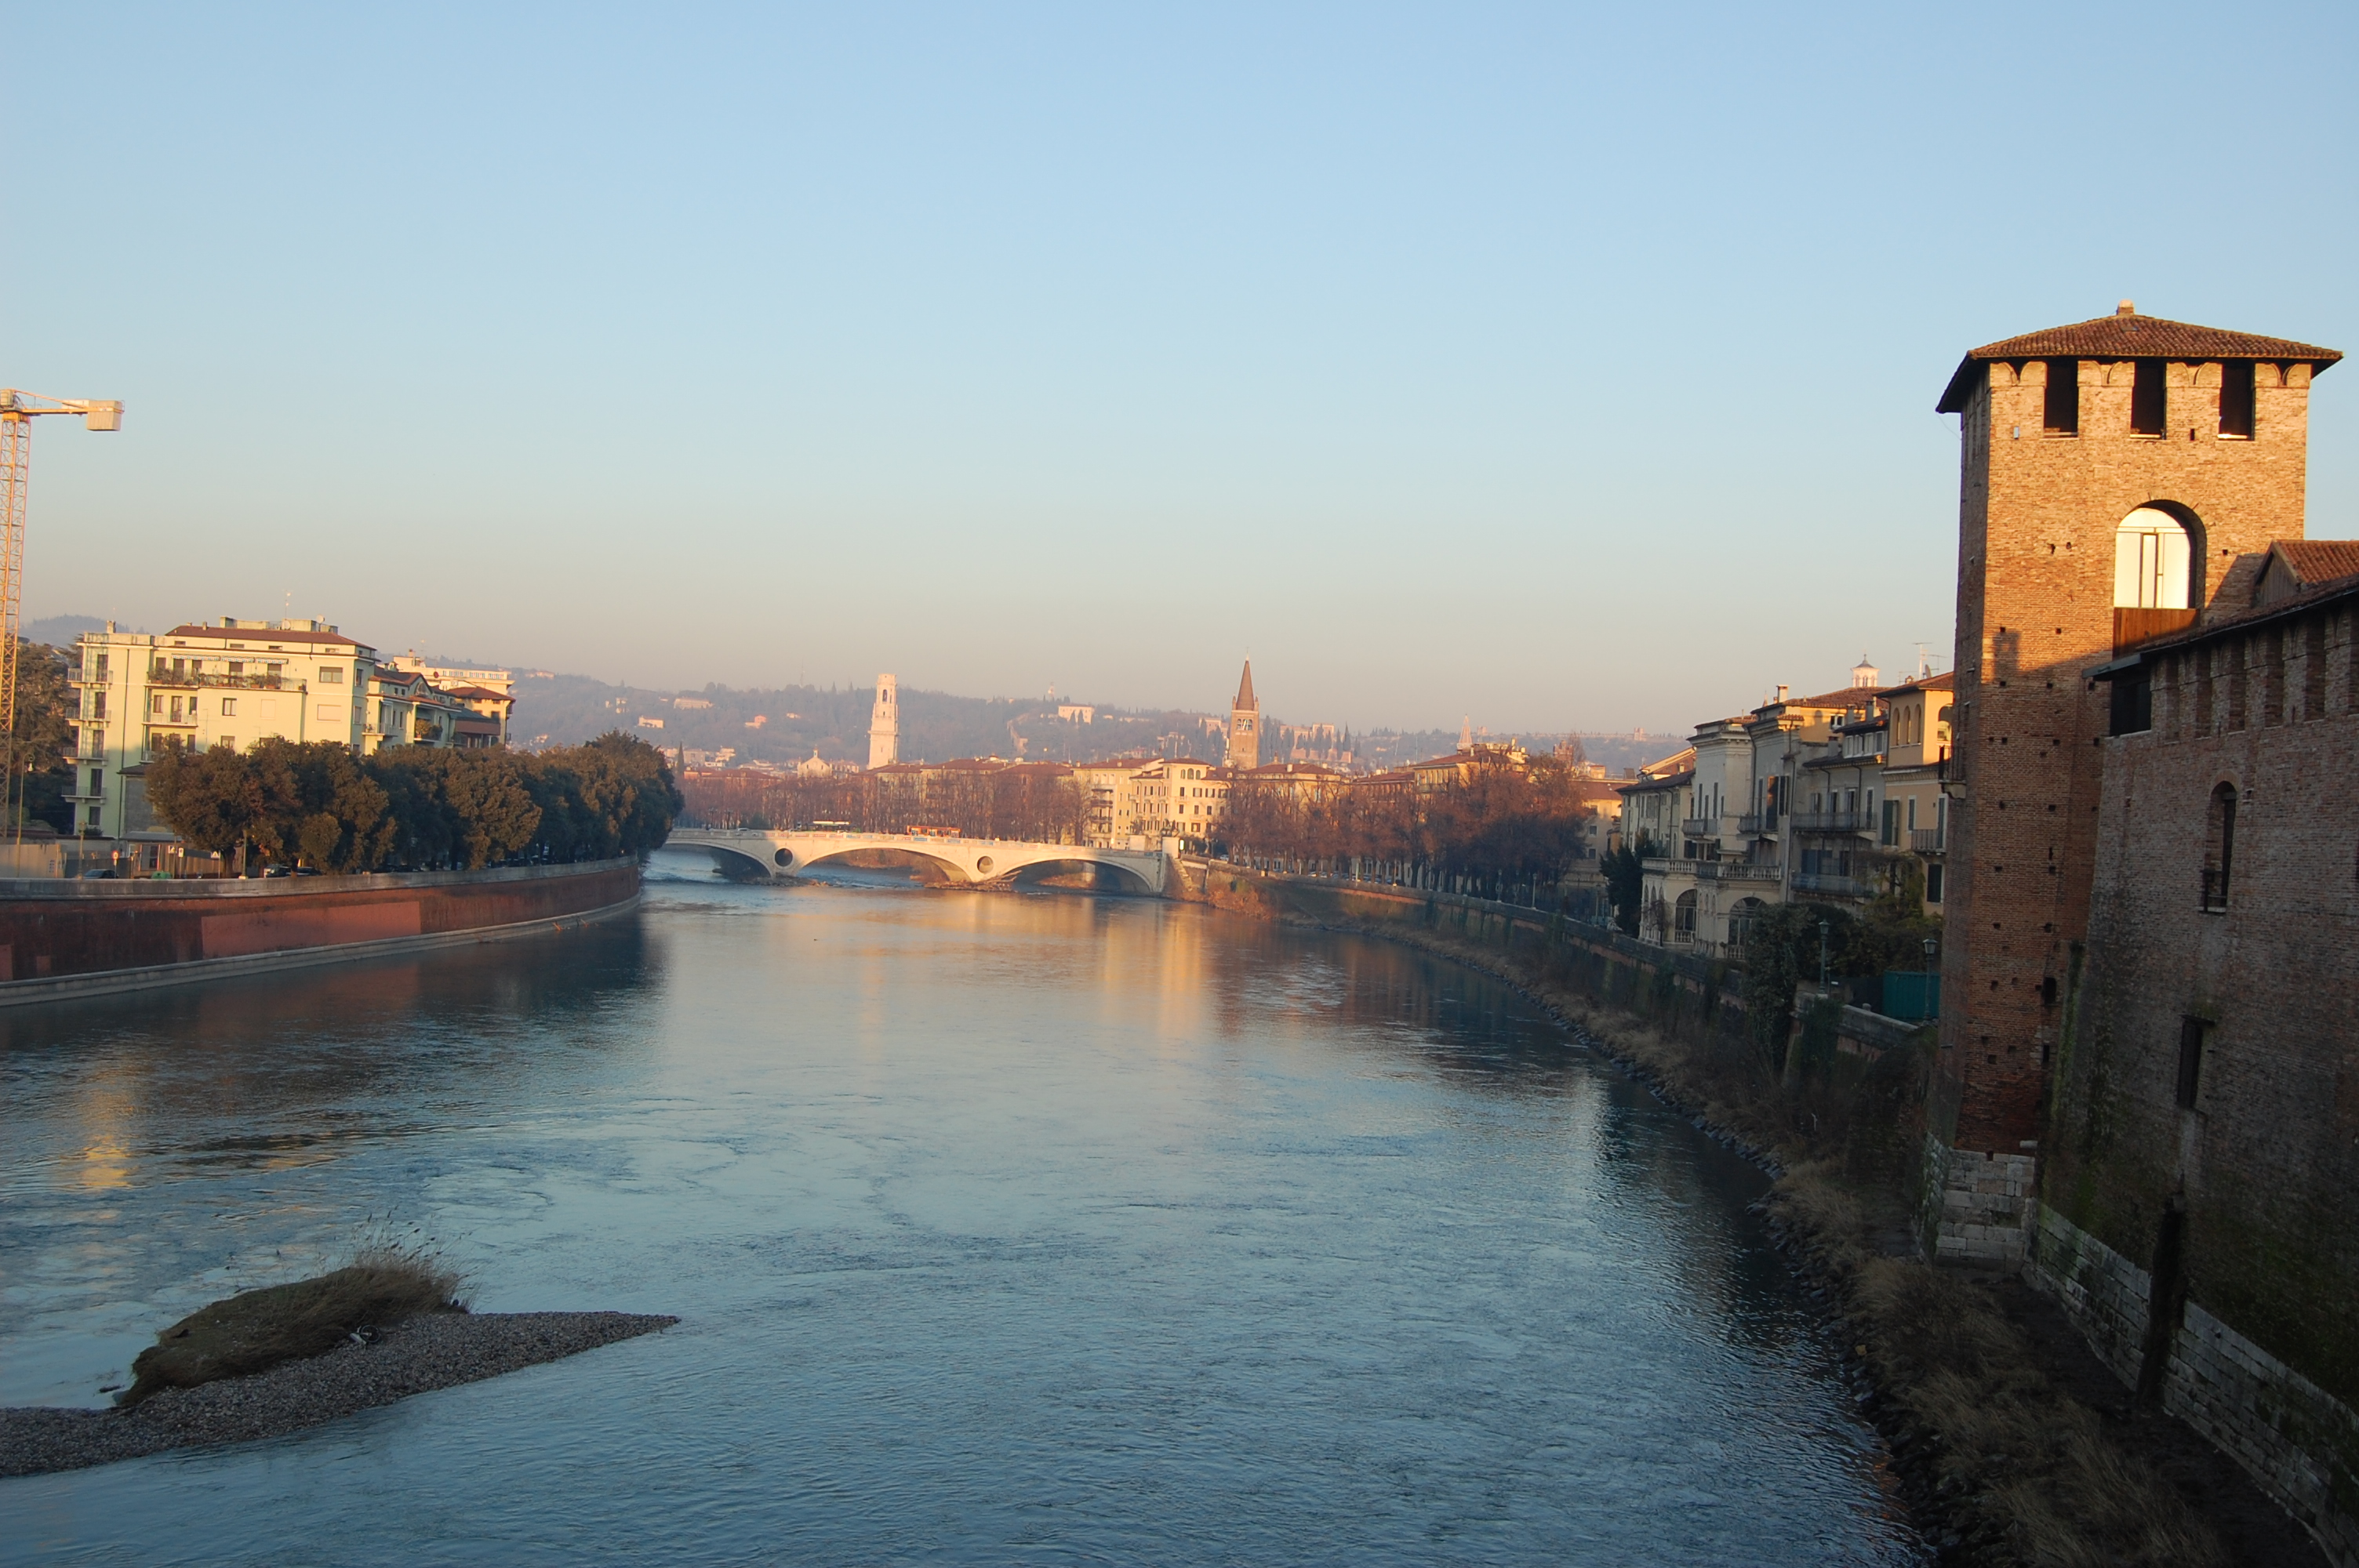 Beautiful City of Verona